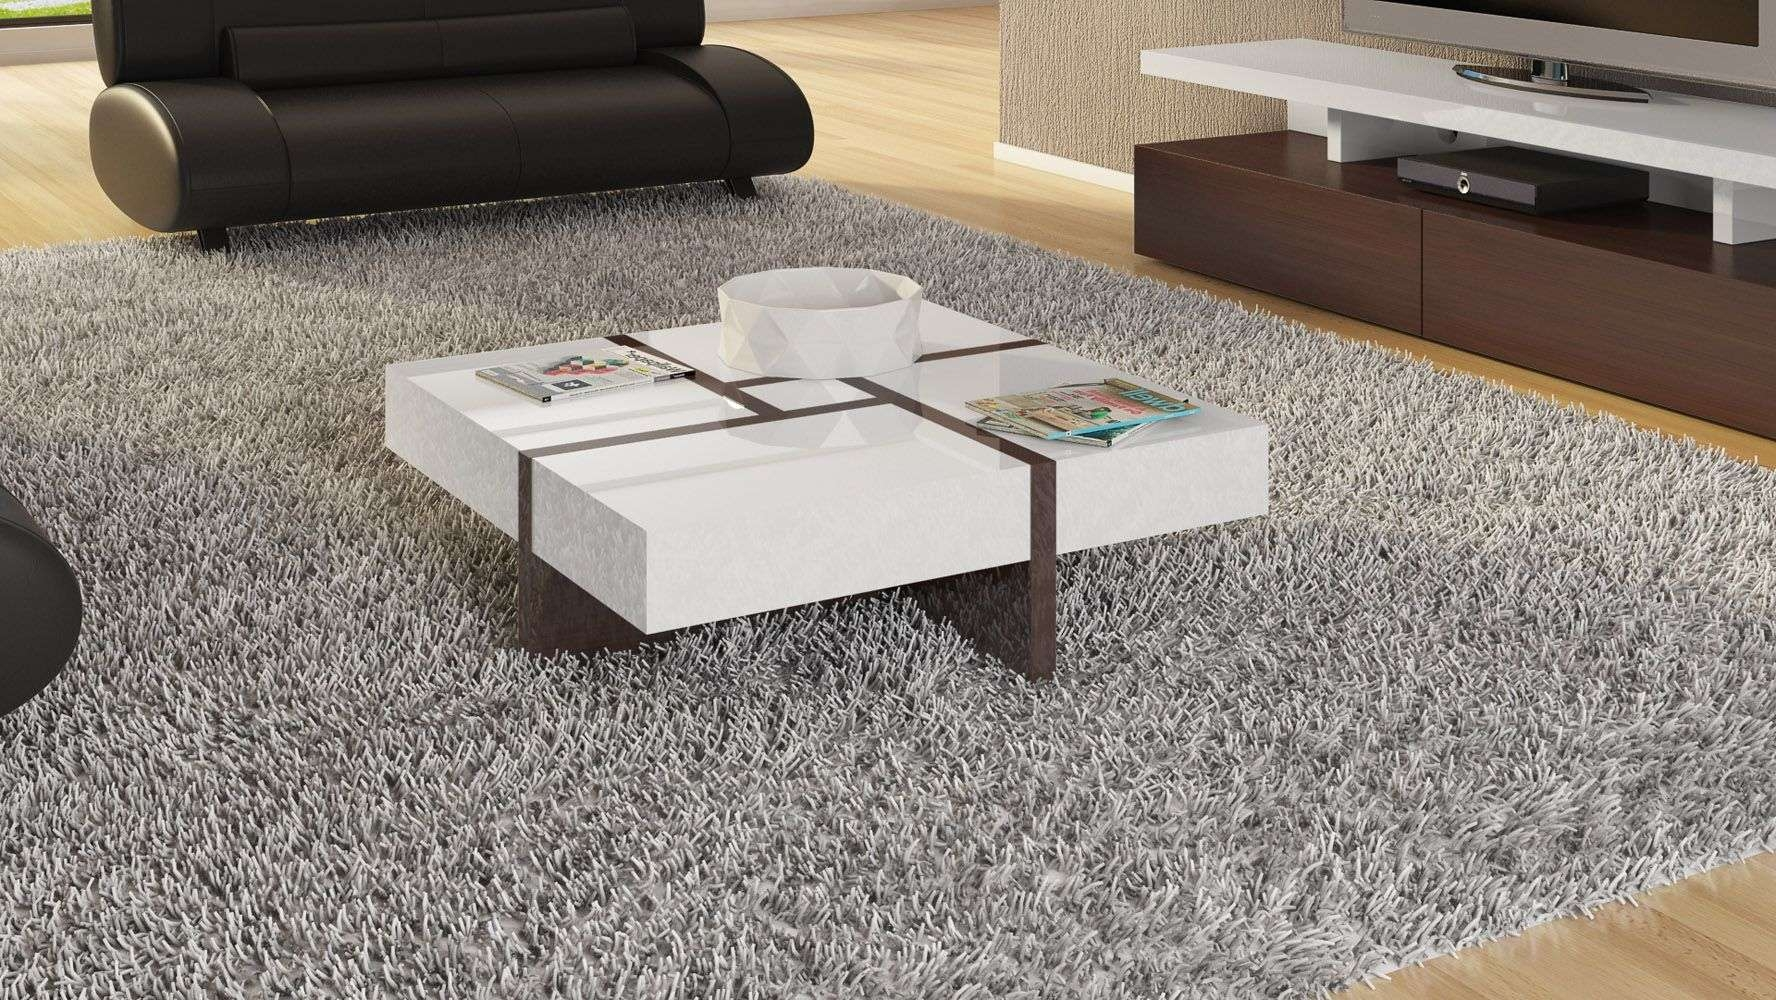 Mcintosh High Gloss Coffee Table With Storage – White Square For Current High Gloss Coffee Tables (View 10 of 20)